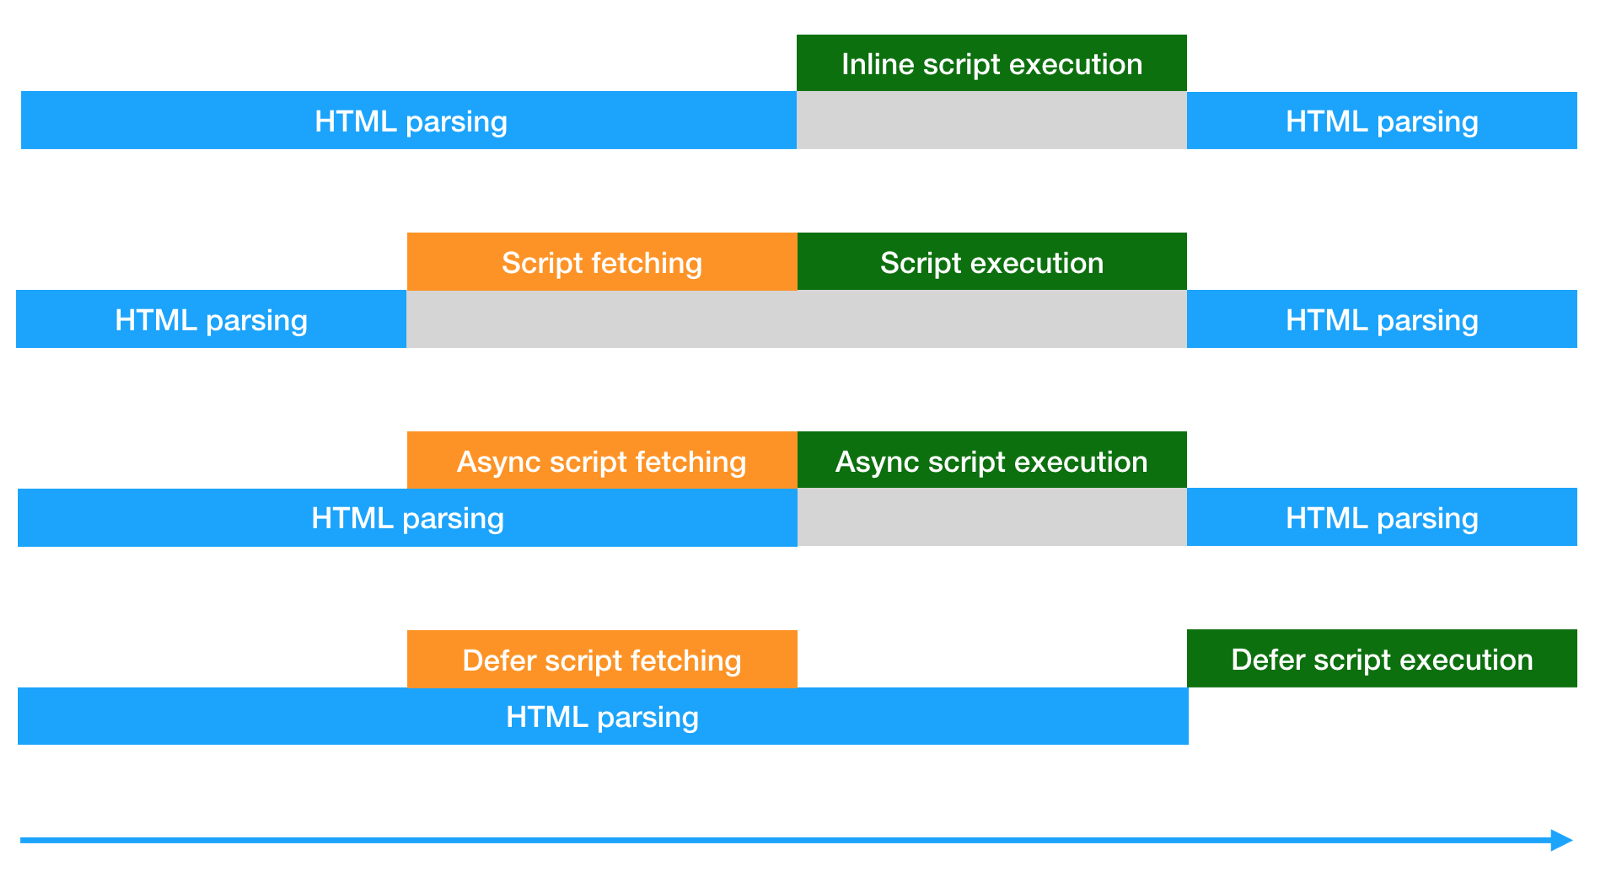 Different ways of script fetching and execution